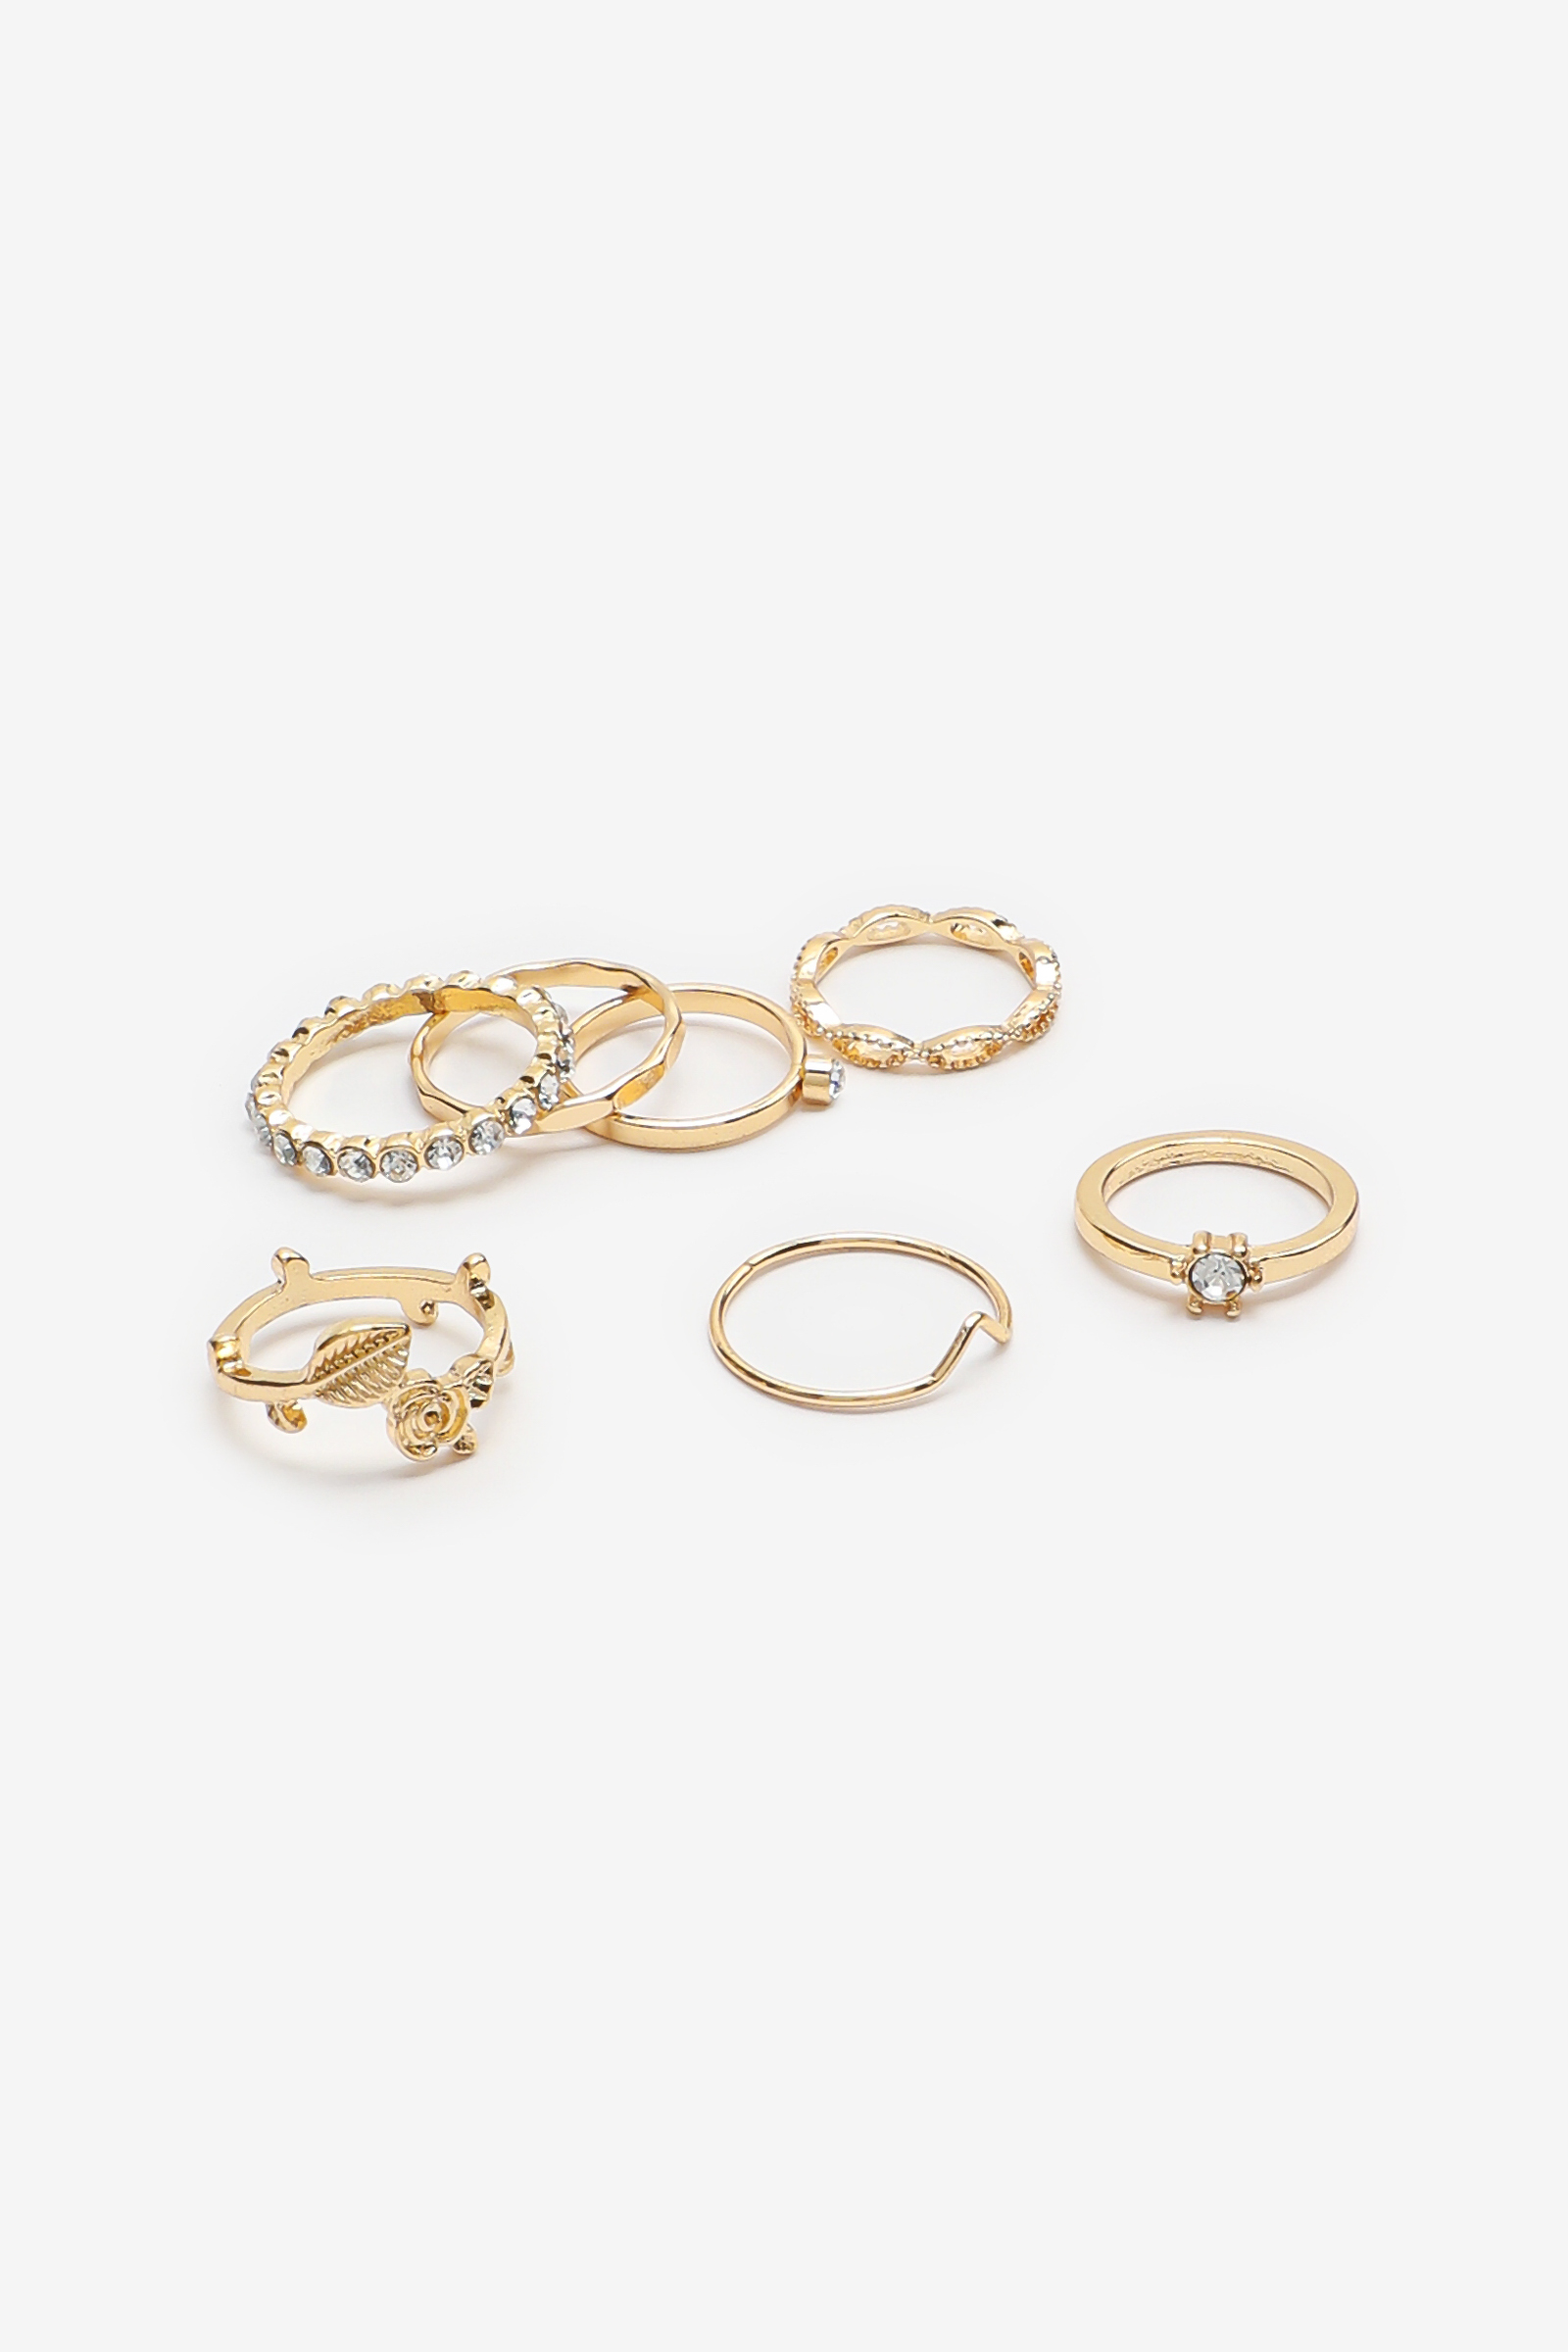 Pack of Assorted Rings